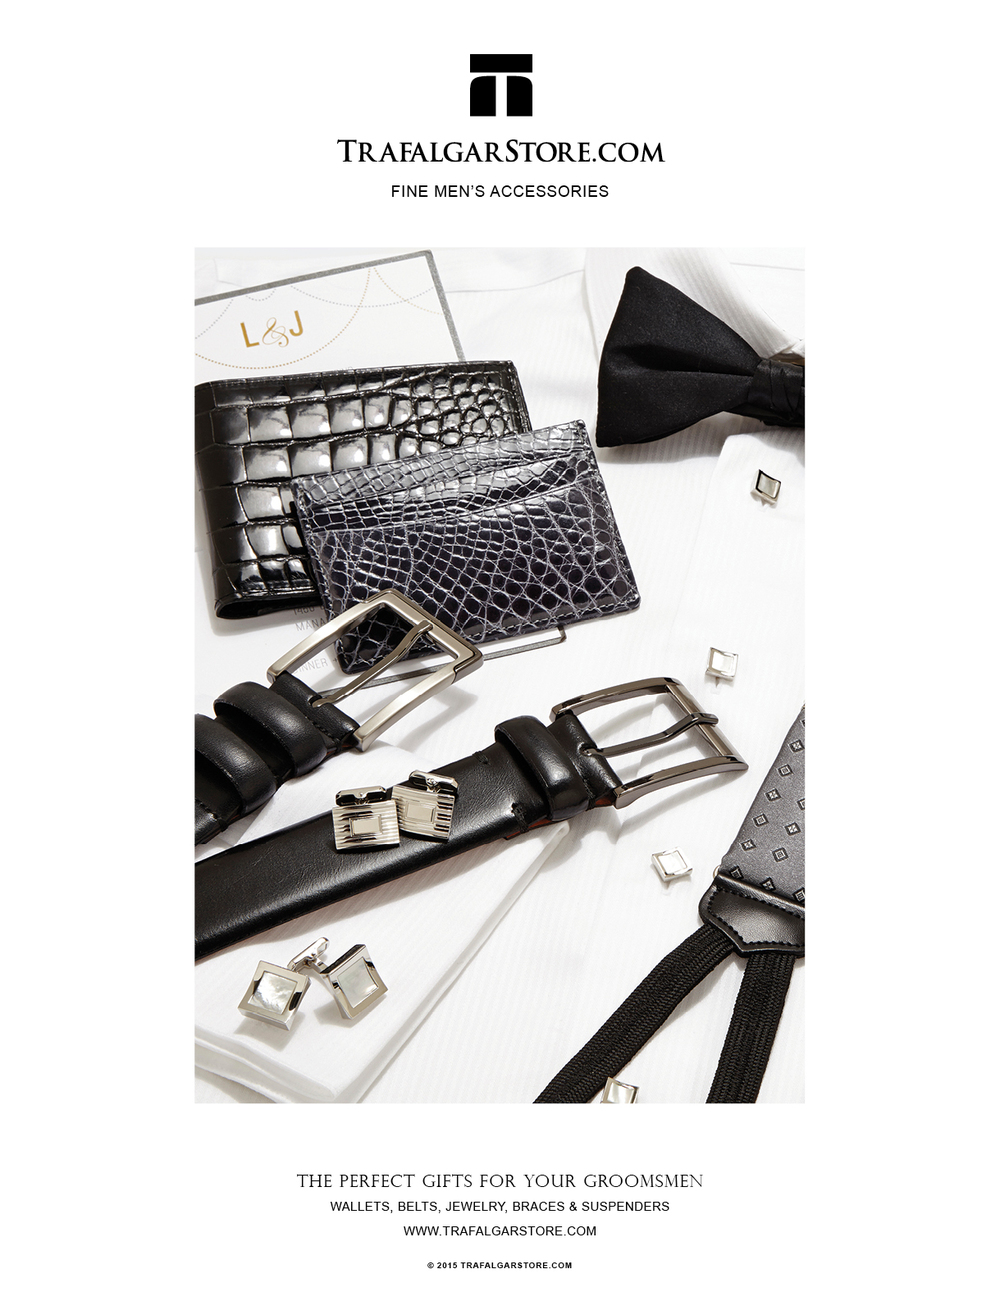 TrafalgarStore.com - The Perfect Gifts for Your Groomsmen